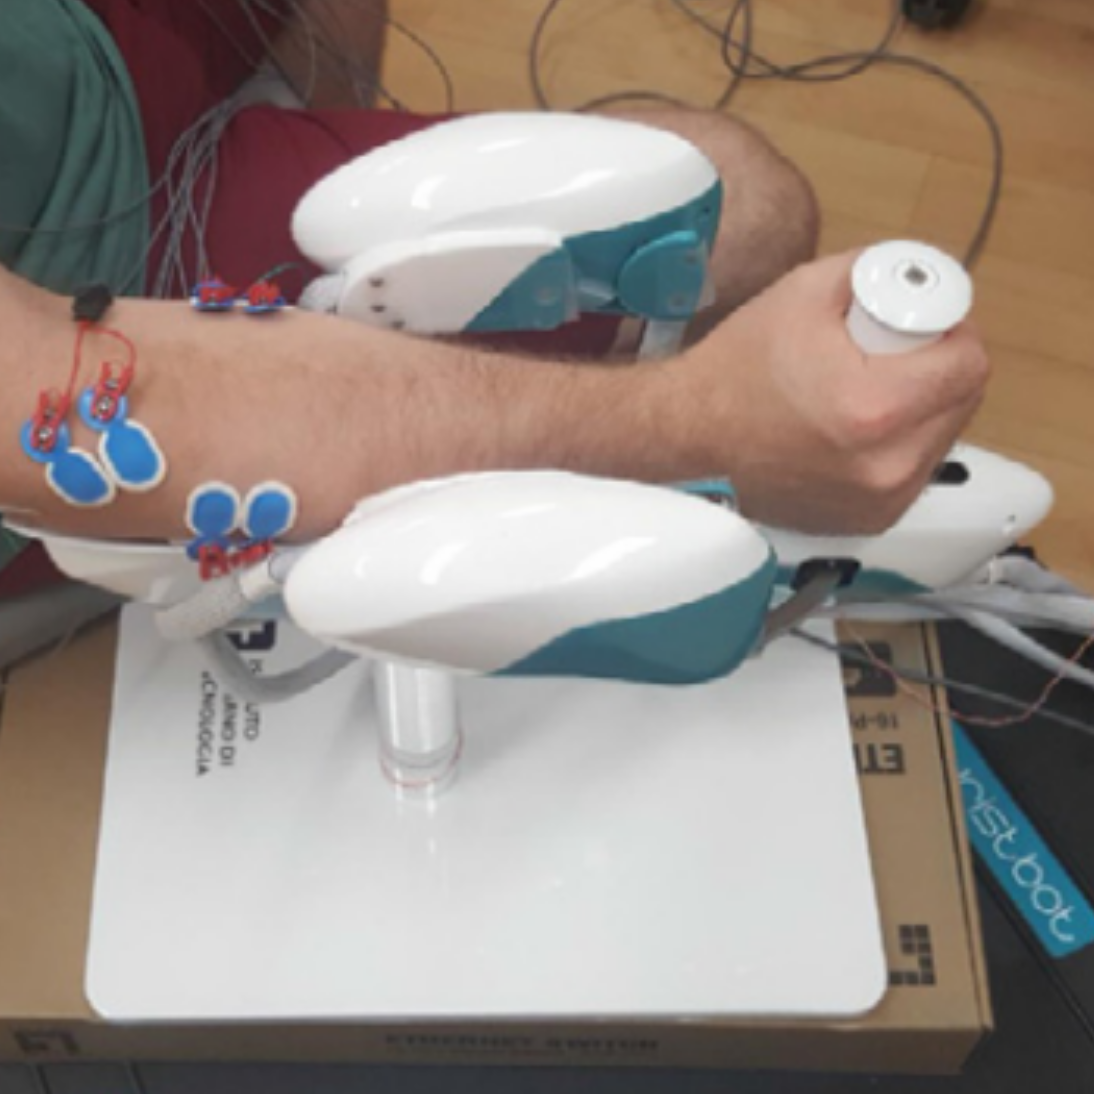 Characterizing forearm muscle activity in young adults during dynamic wrist flexion–extension movement using a wrist robot